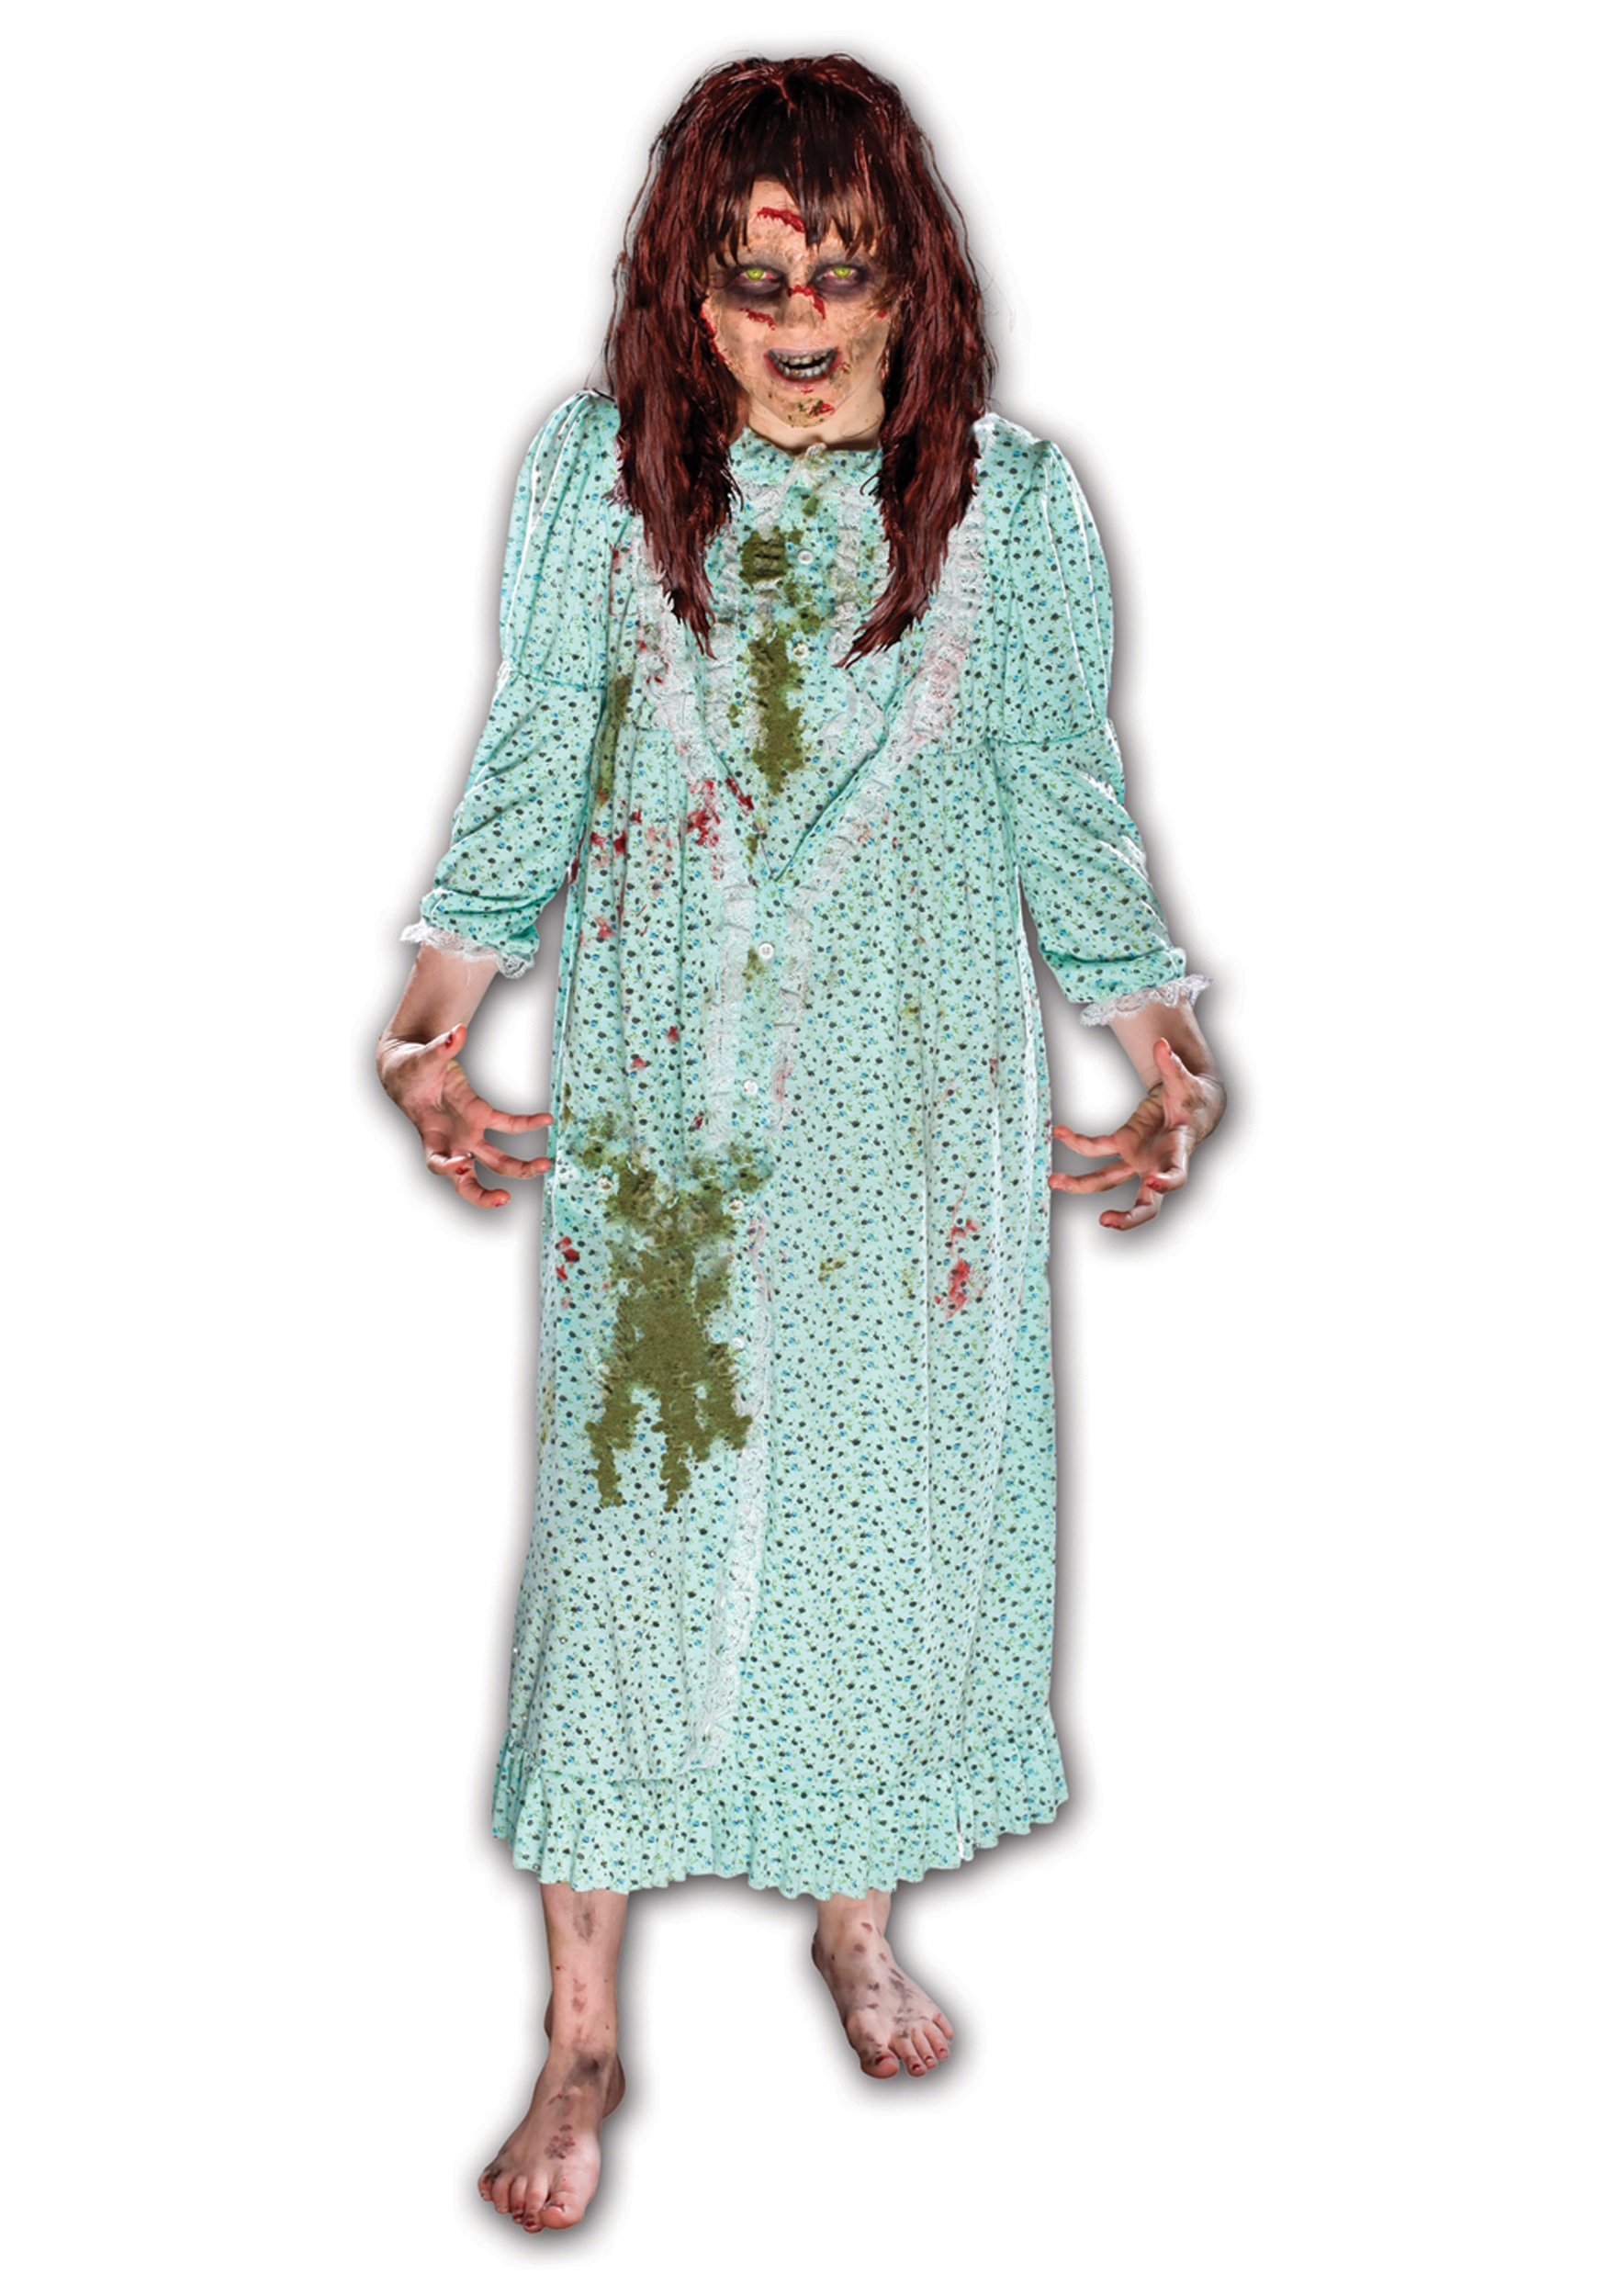 sc 1 st  Halloween Costumes & The Exorcist Regan Costume w/ Wig